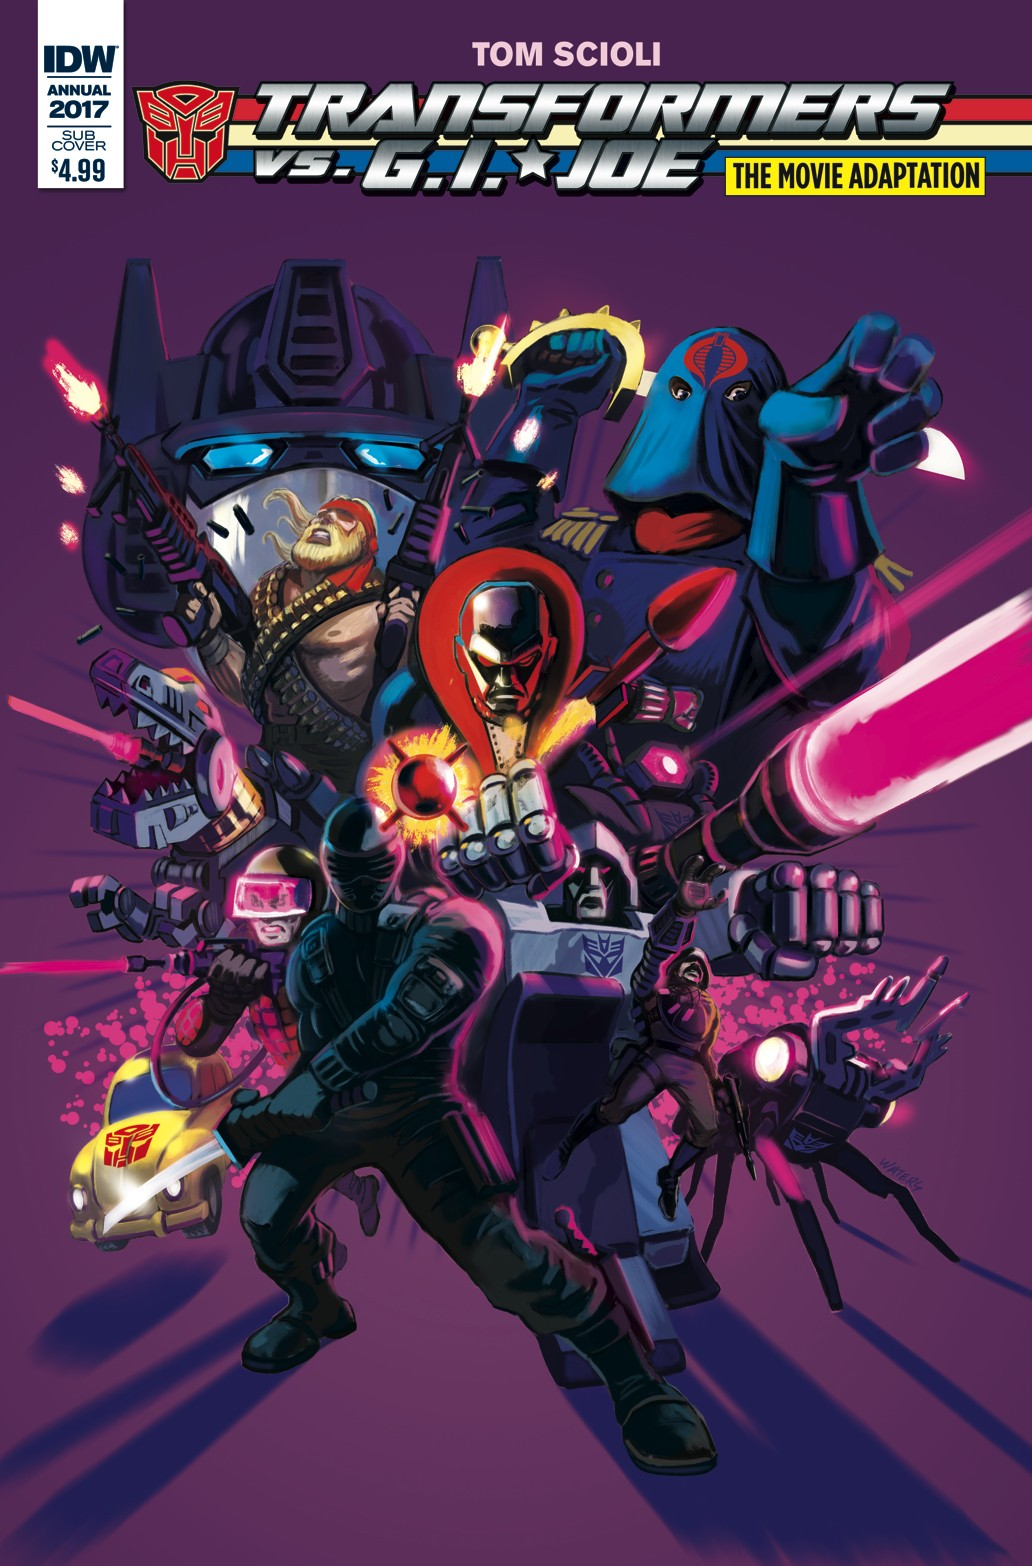 Transformers News: Variant Cover for IDW Transformers vs. G.I. Joe The Movie Adaptation One Shot